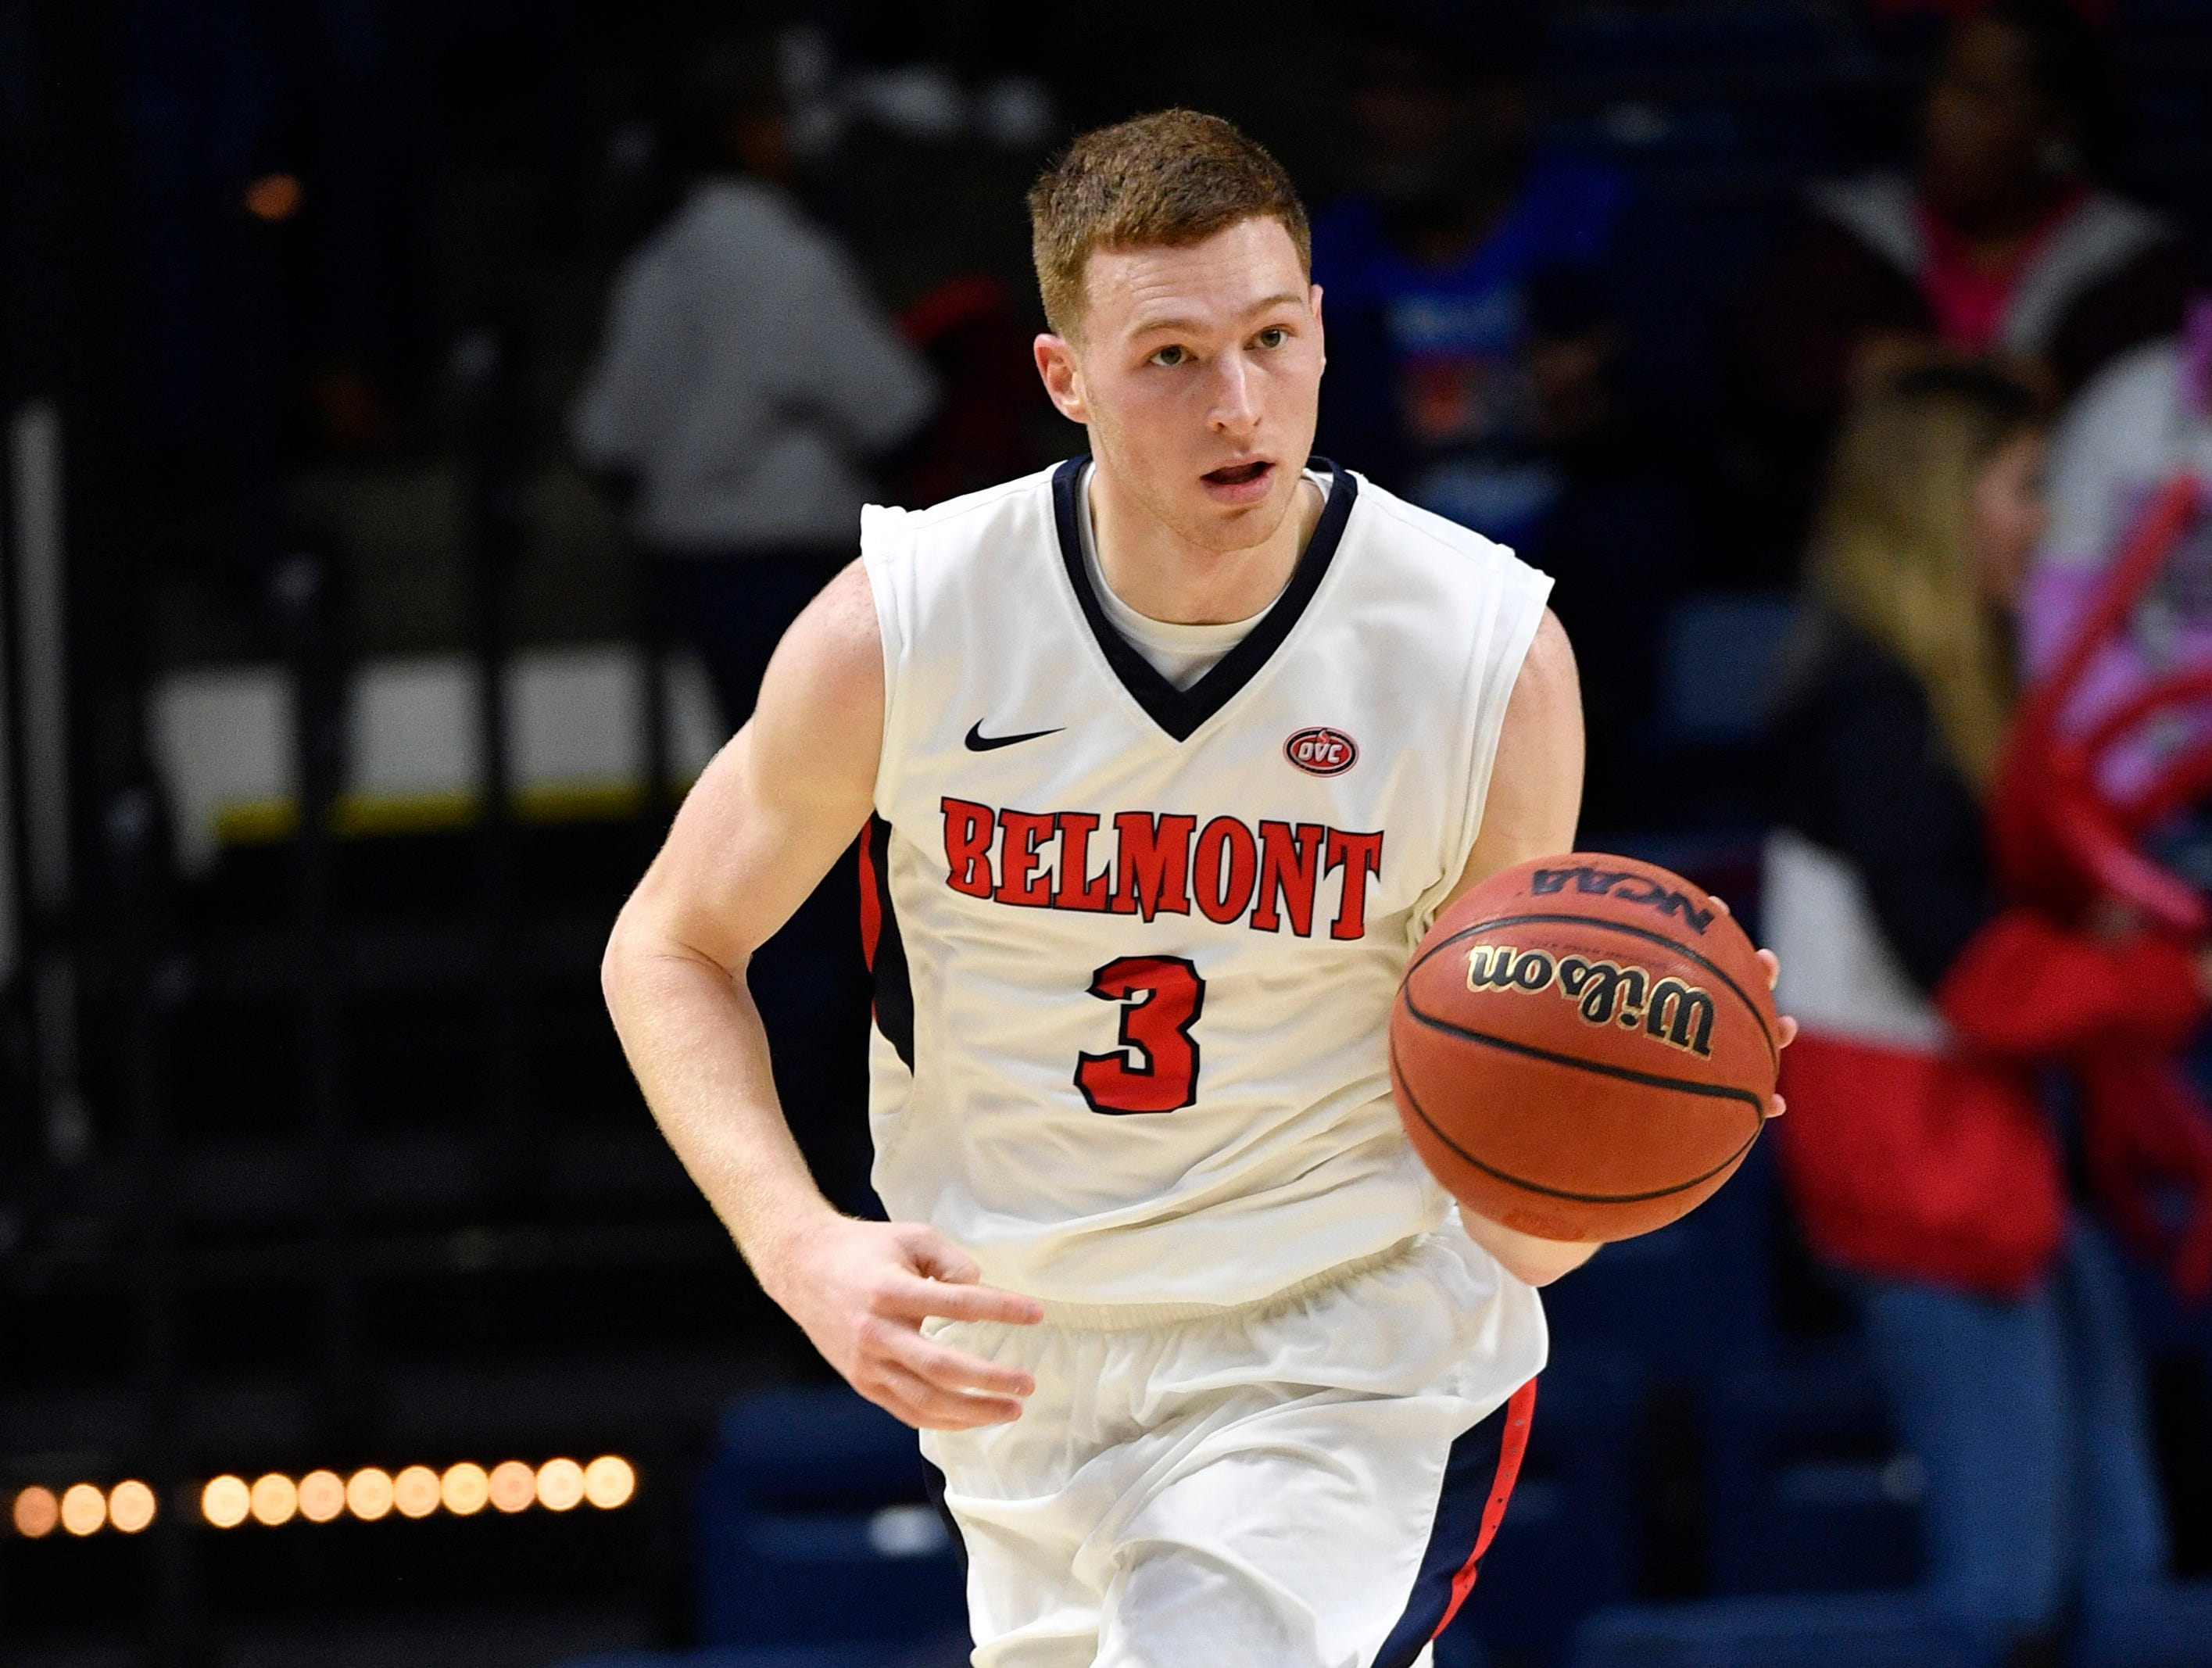 Dylan Windler carries the ball down the court as Belmont plays Eastern Illinois in Curb Event Center Thursday, Feb. 21, 2019, in Nashville, Tenn. Flood stage is 40 feet.